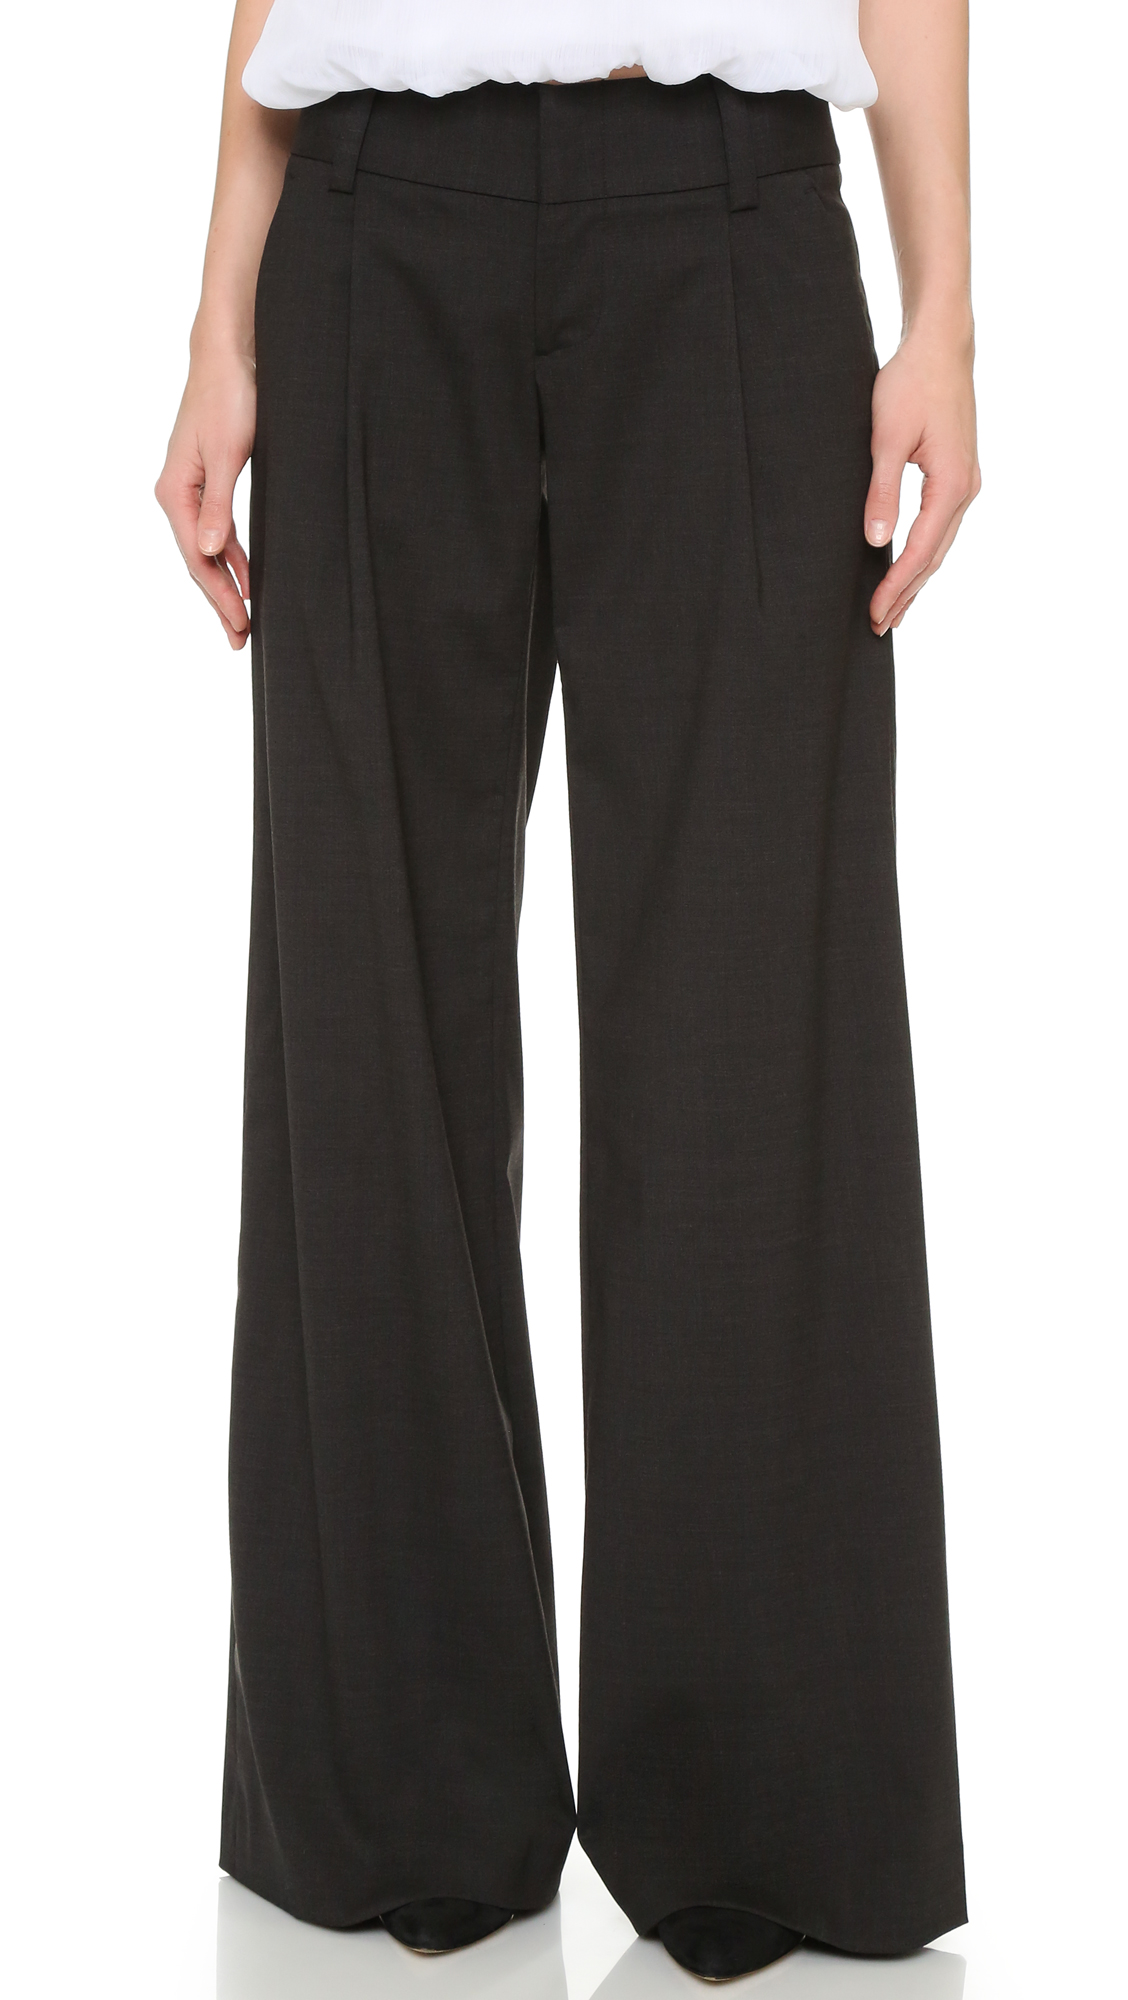 Alice + Olivia Eric Front Pleat Wide Leg Pants - Charcoal at Shopbop